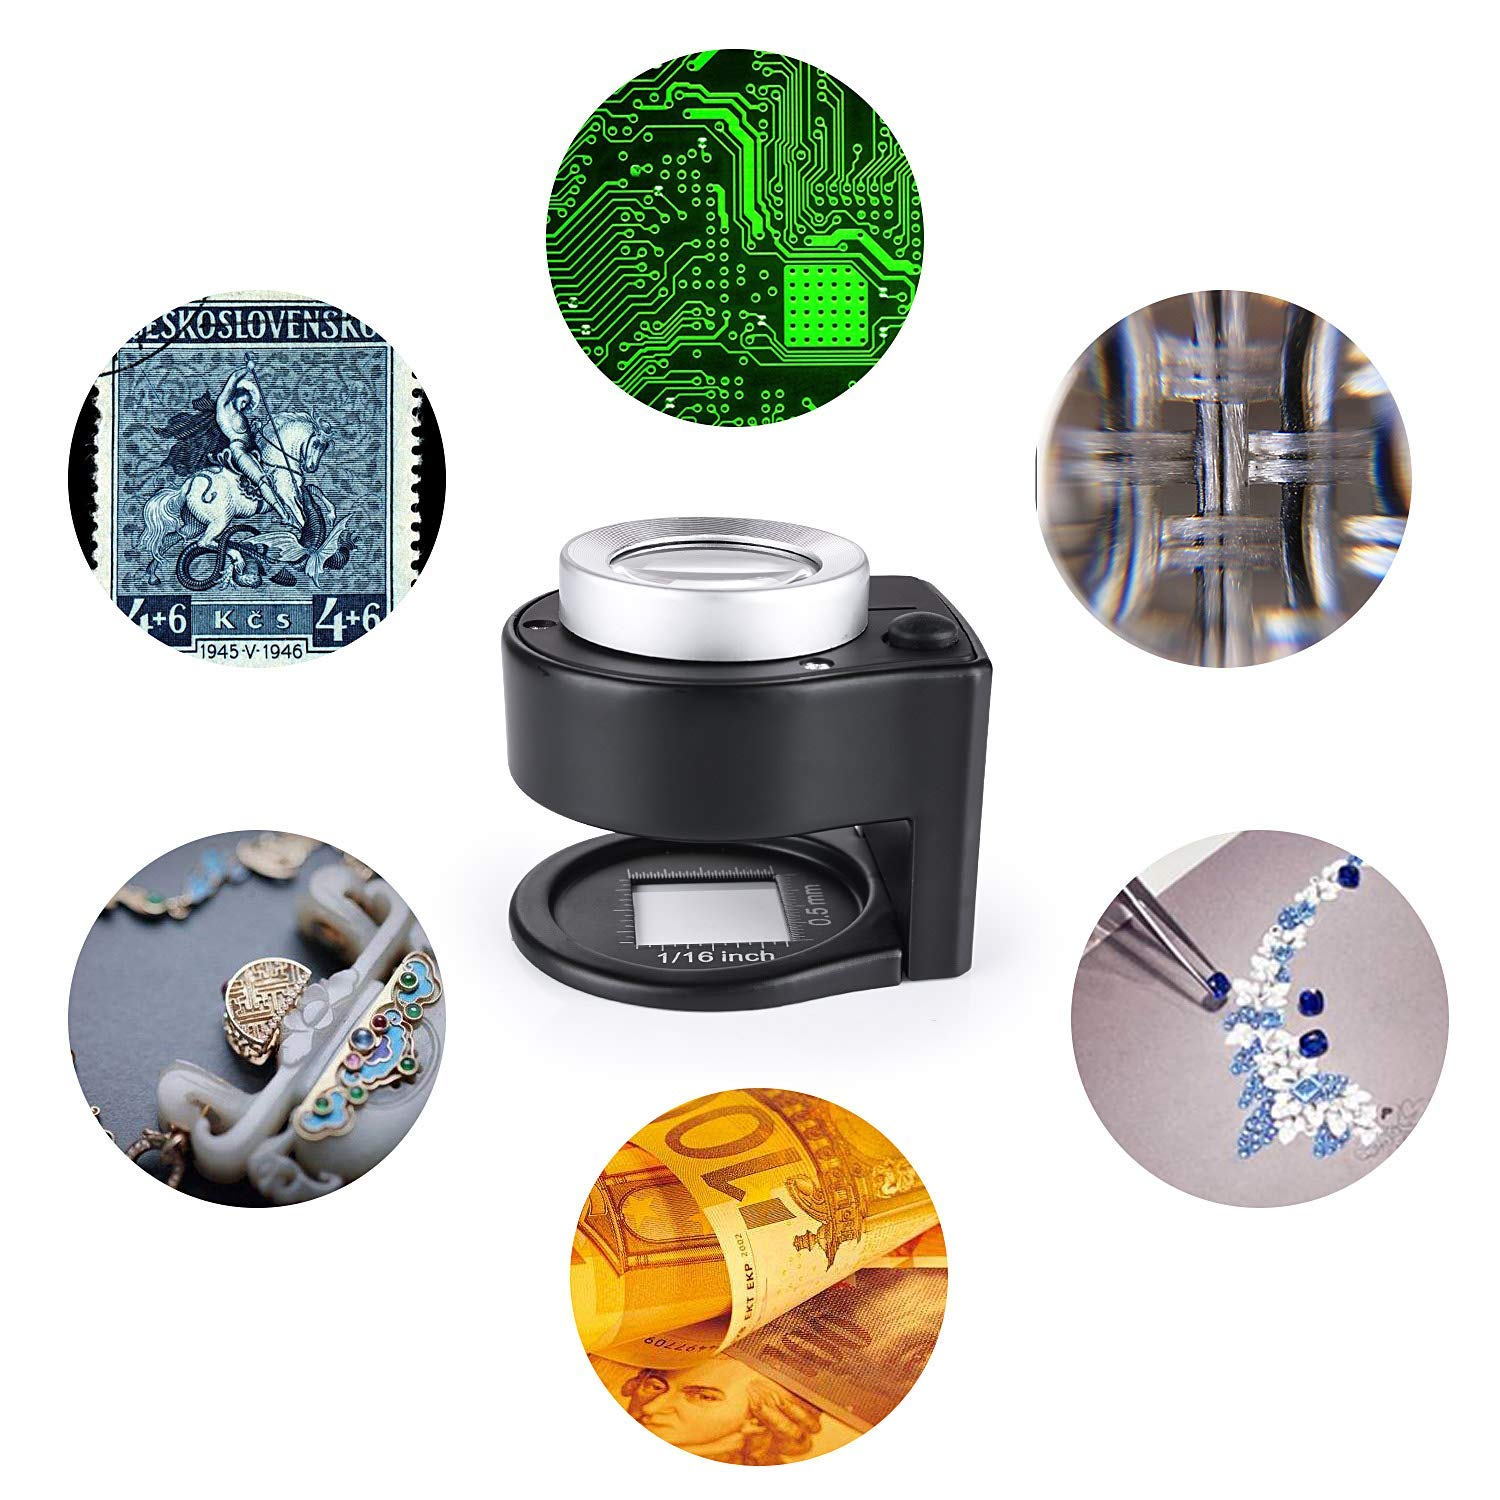 30X Loupe Magnifier with 6 LED and UV Light,Desktop Portable Metal Magnifier Folding Scale Sewing Magnifing Glass for Textile Optical Jewelry Tool Coins Currency